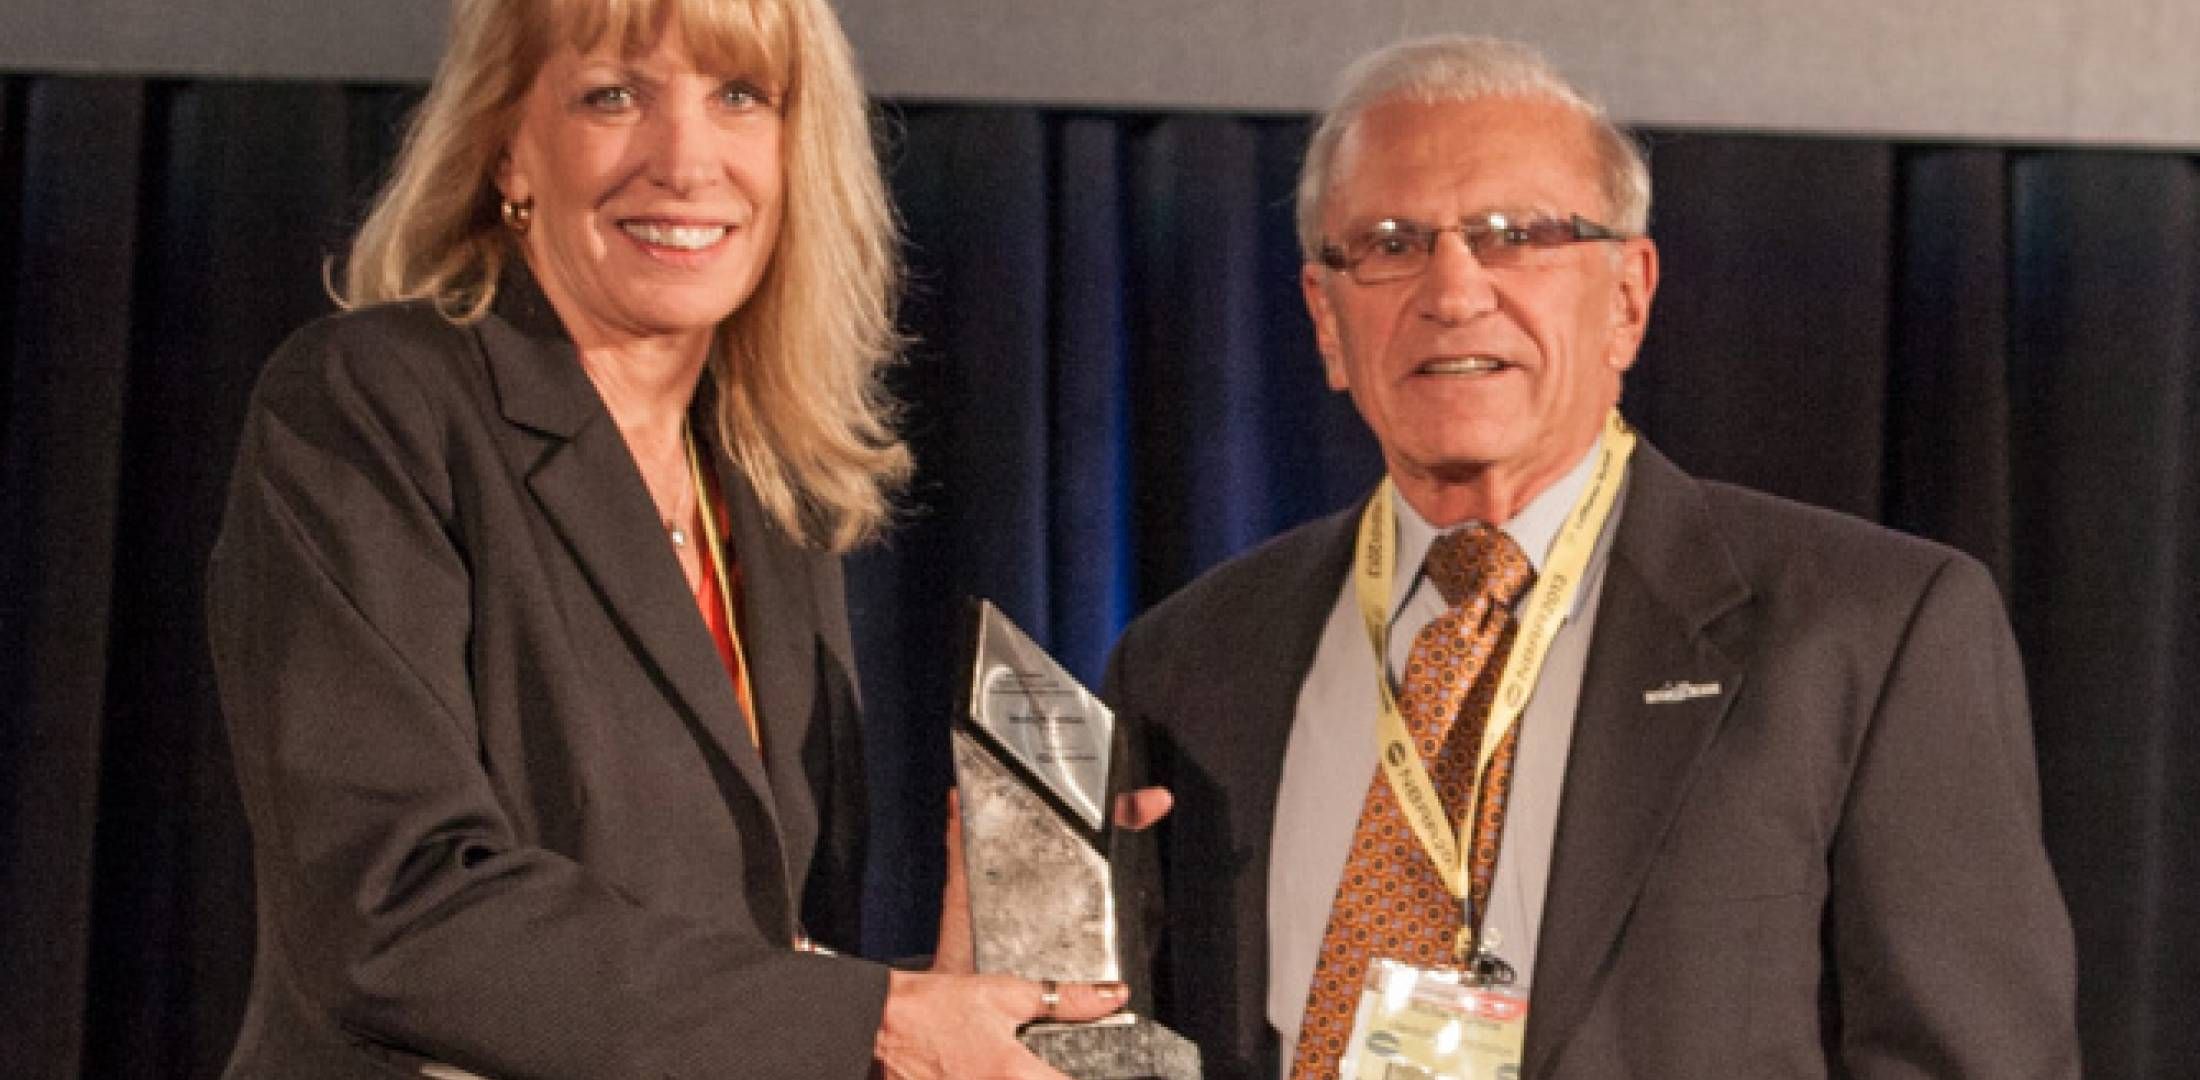 Wichita Eagle reporter Molly McMillian won the NBAA 2013 Gold Wing Award for her work on business aviation for the paper.